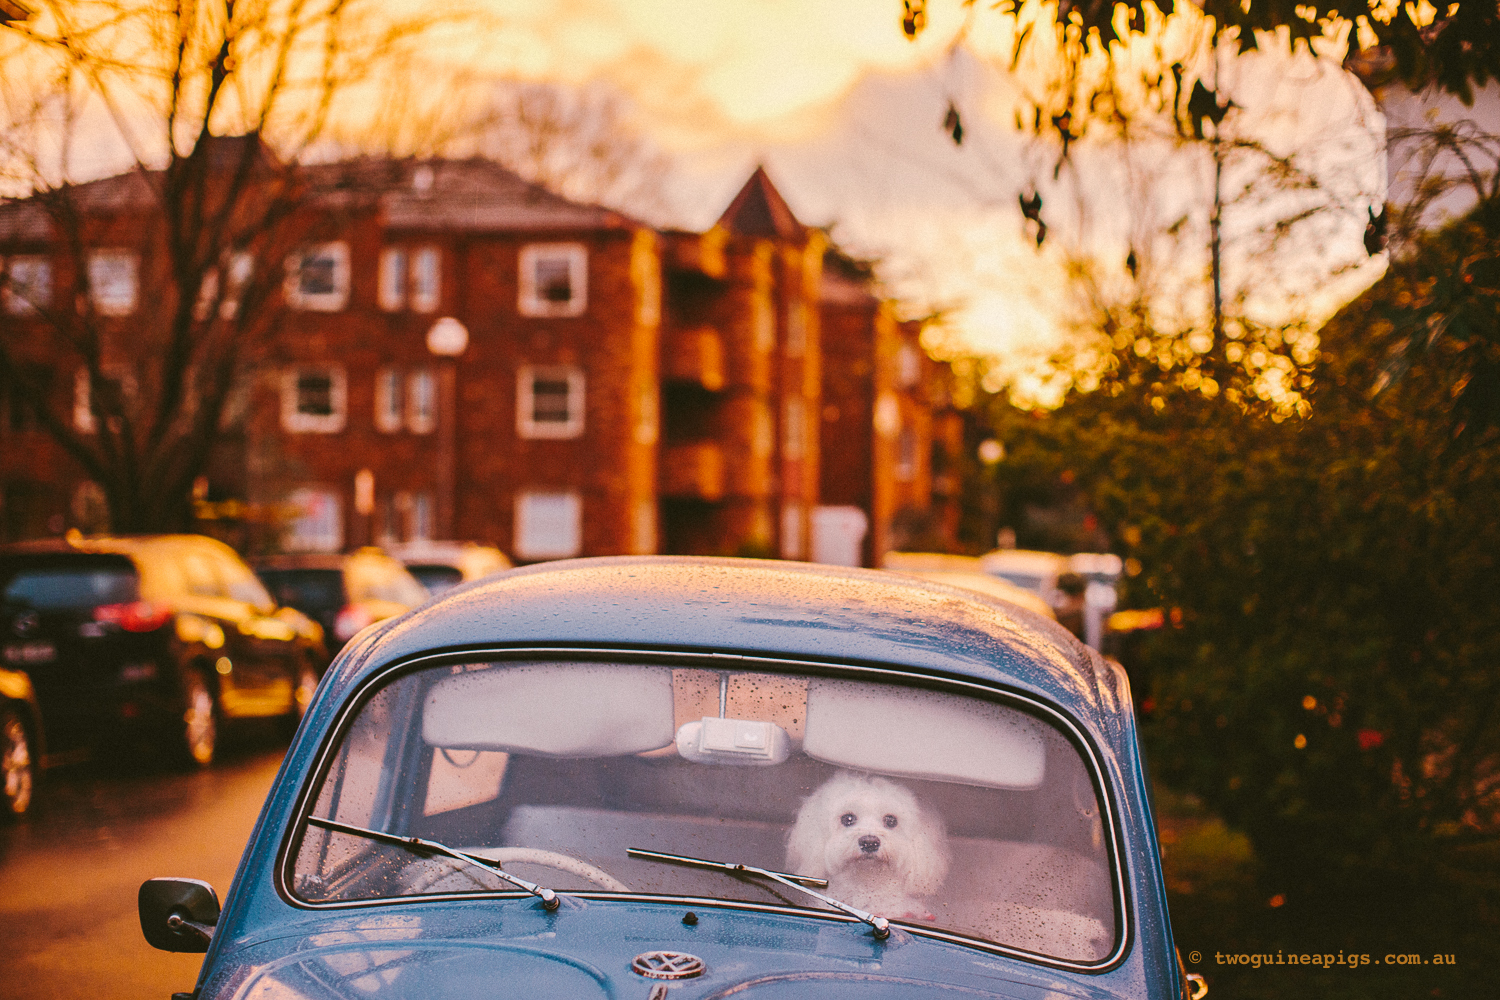 twoguineapigs_pet_photography_dalston_havanese_day_3_1500-13.jpg